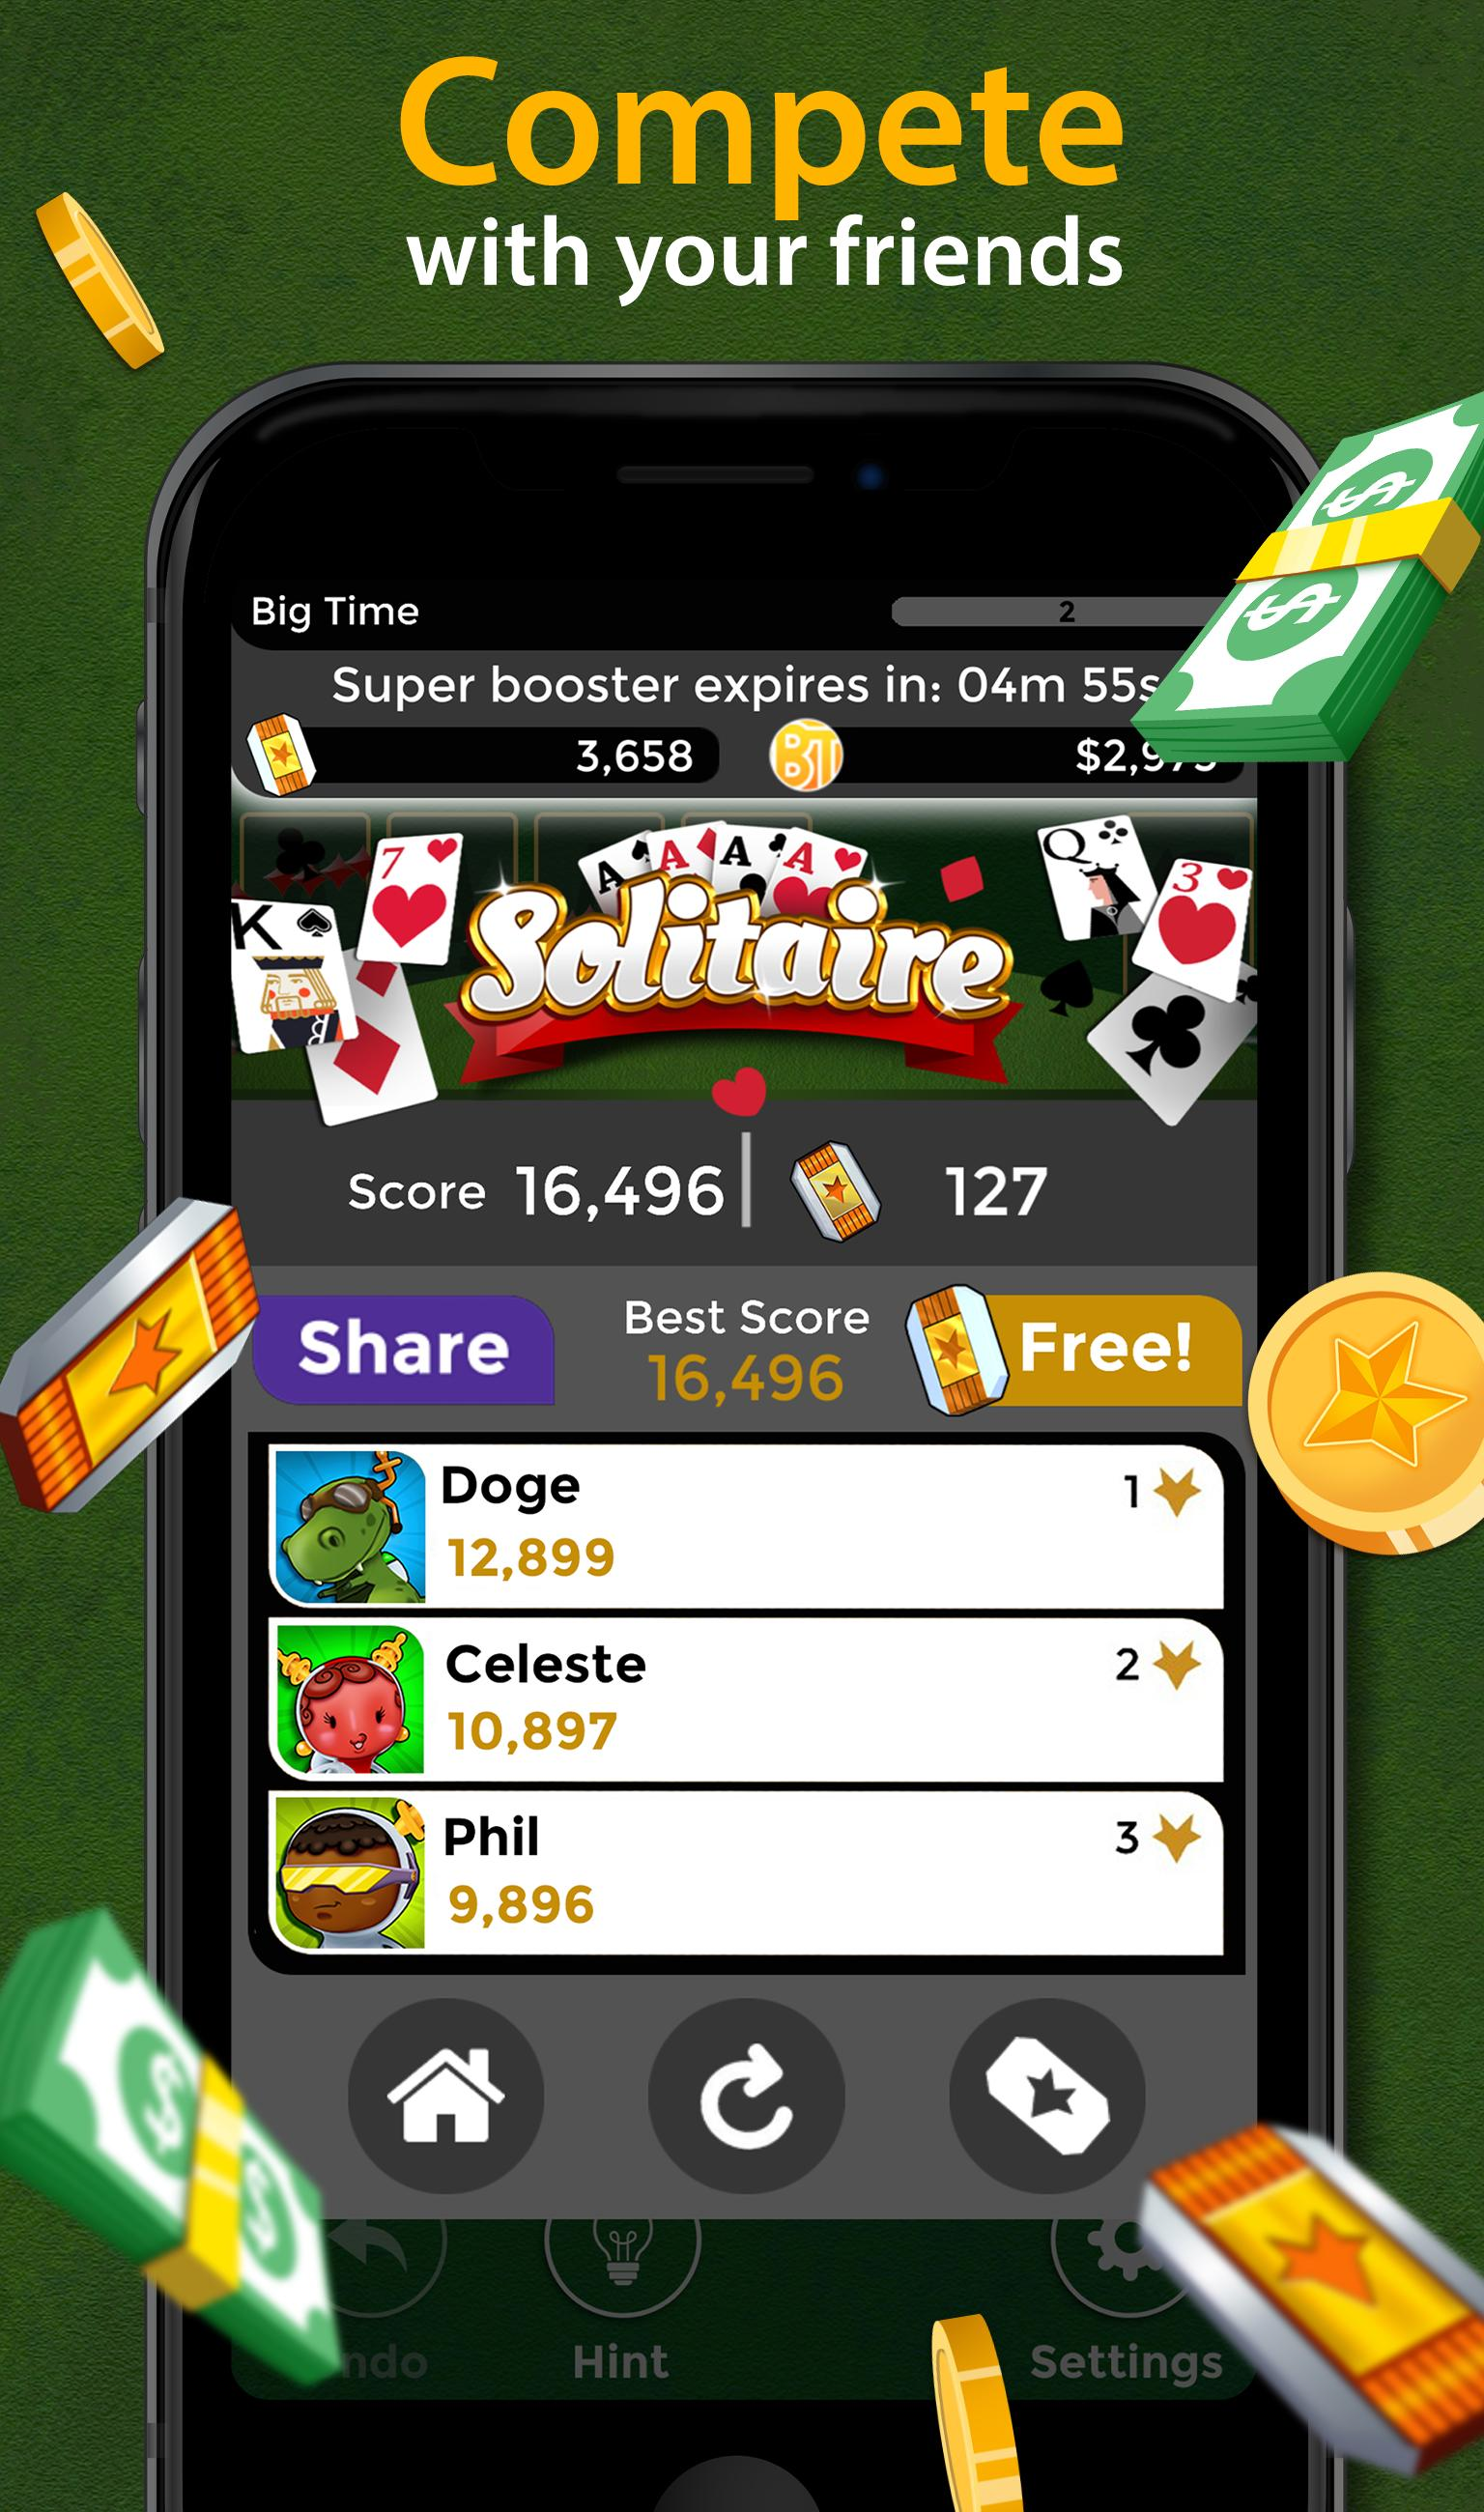 Solitaire Make Free Money and Play the Card Game 1.8.5 Screenshot 5